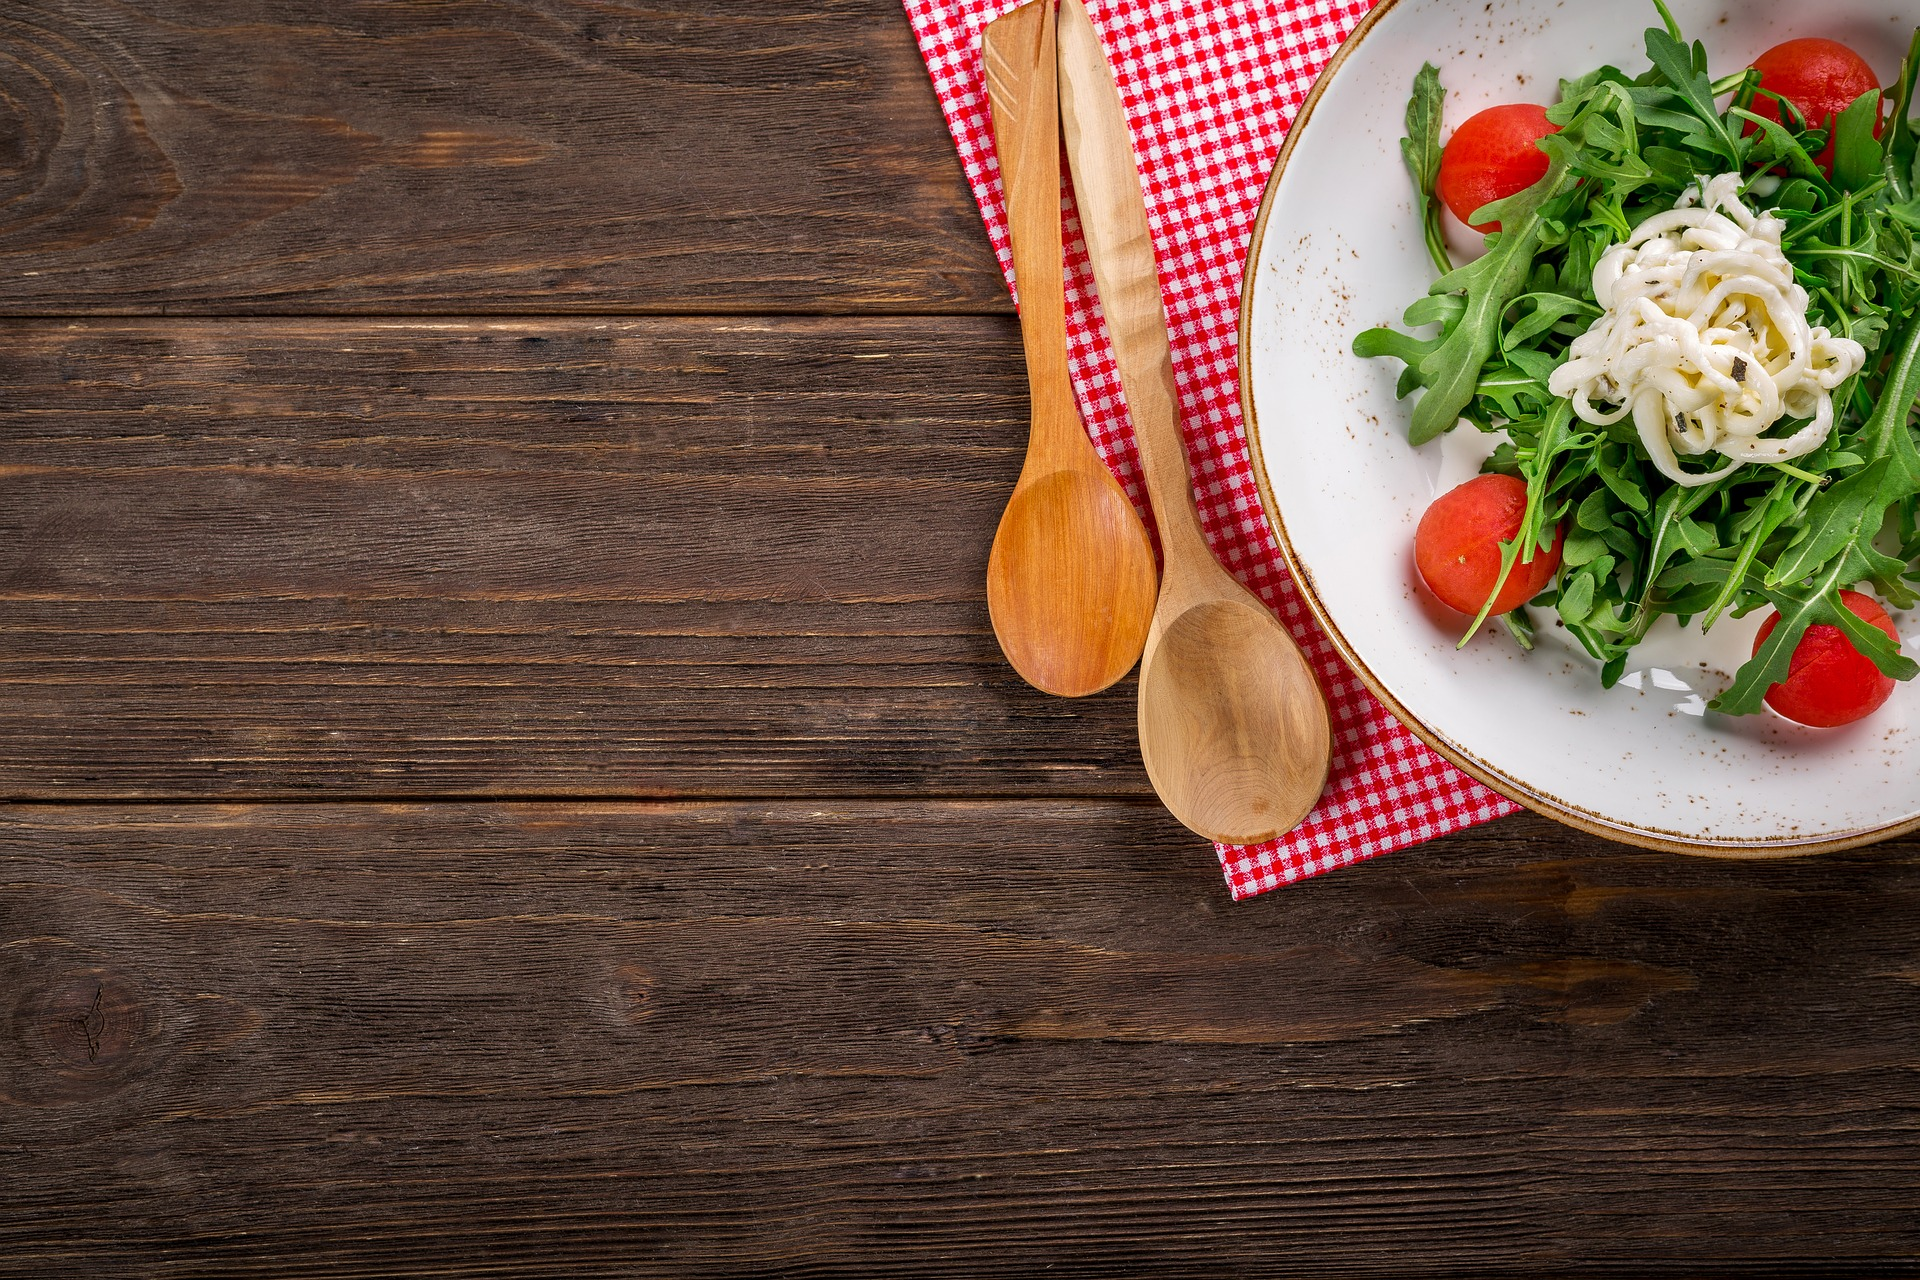 heart healthy diets lack what nutrients